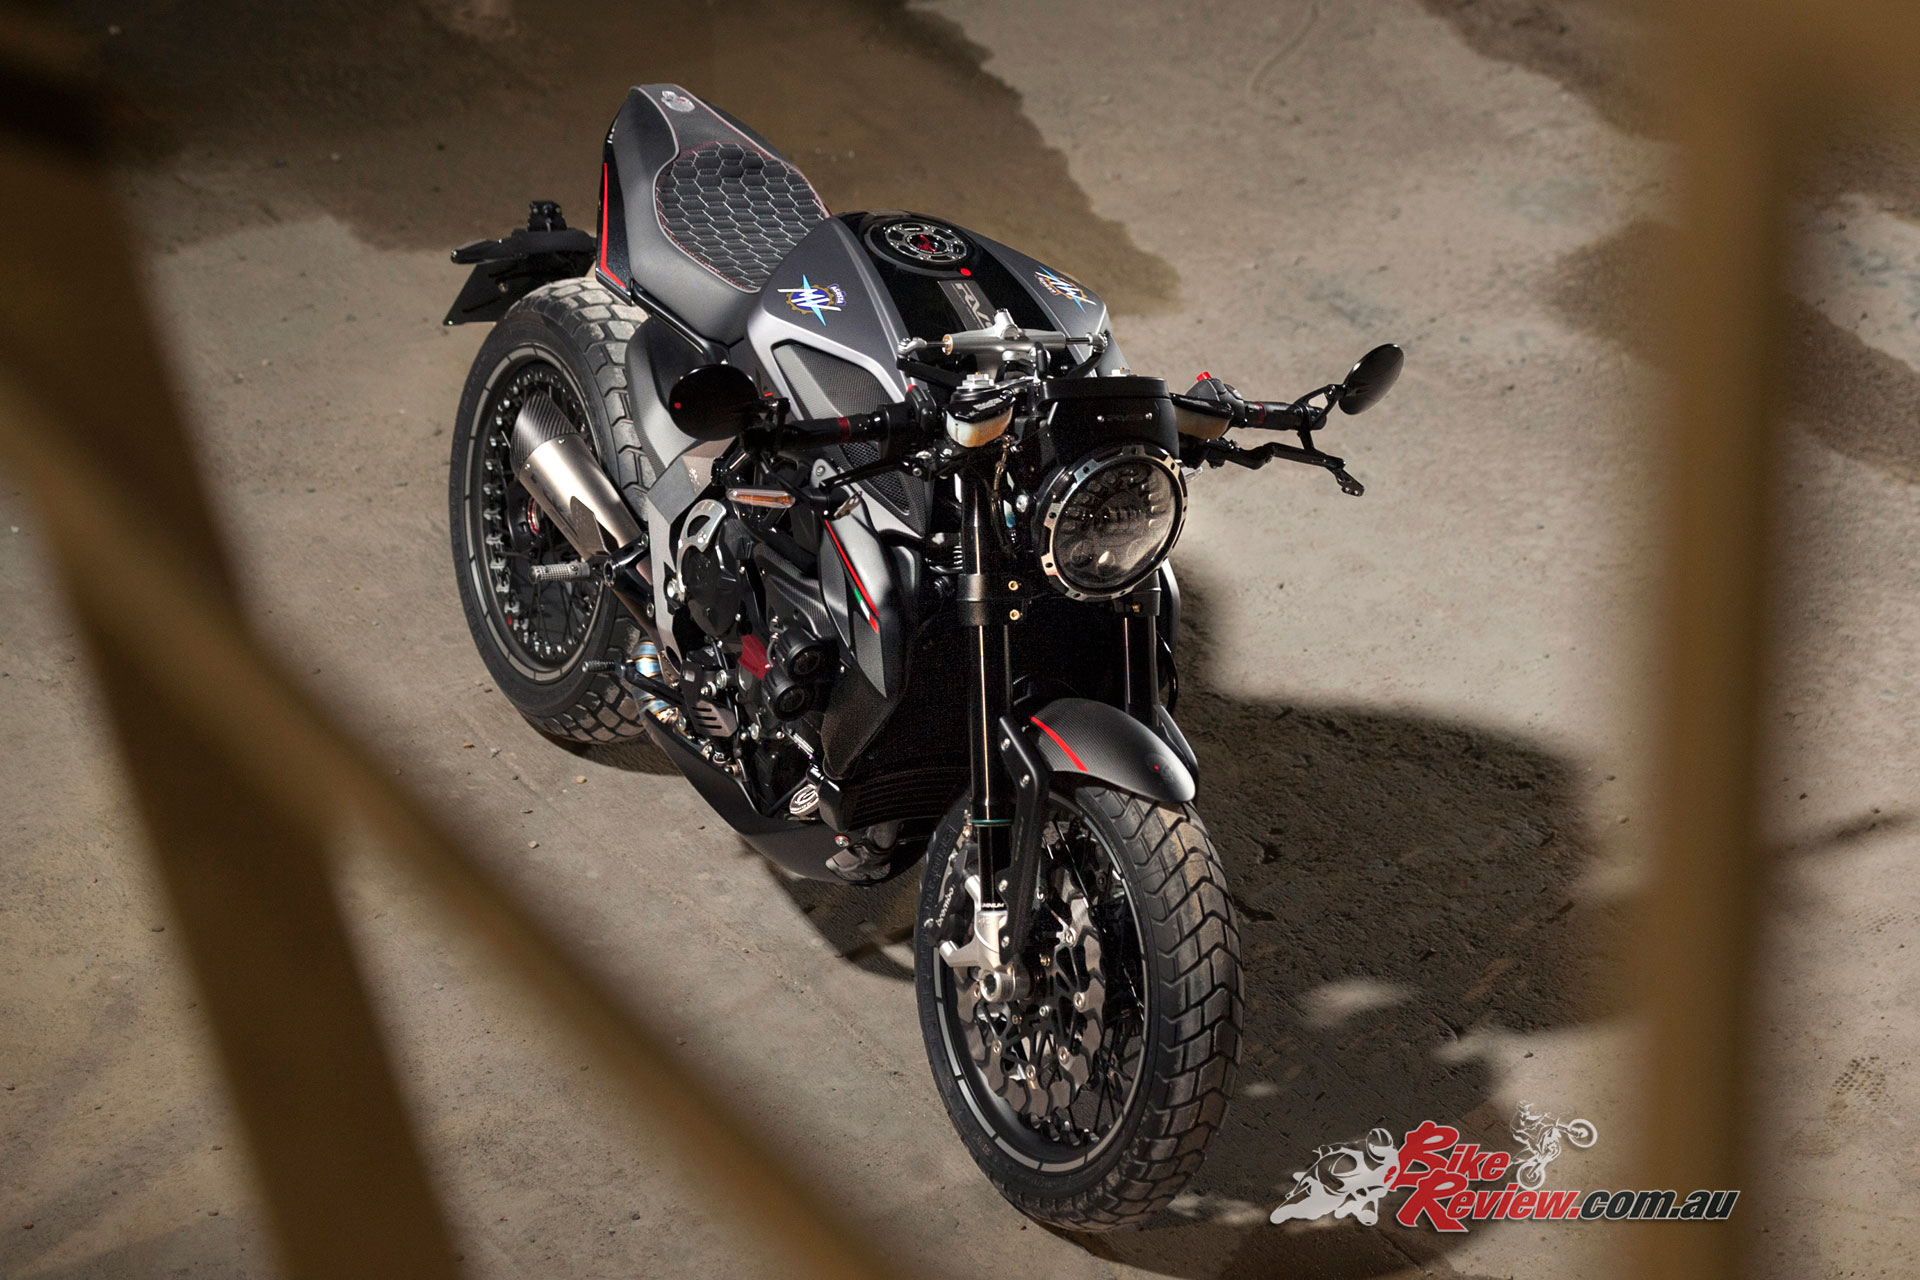 Harley Davidson Cruiser >> MV Agusta reveals their new Dragster based RVS#1 - Bike Review